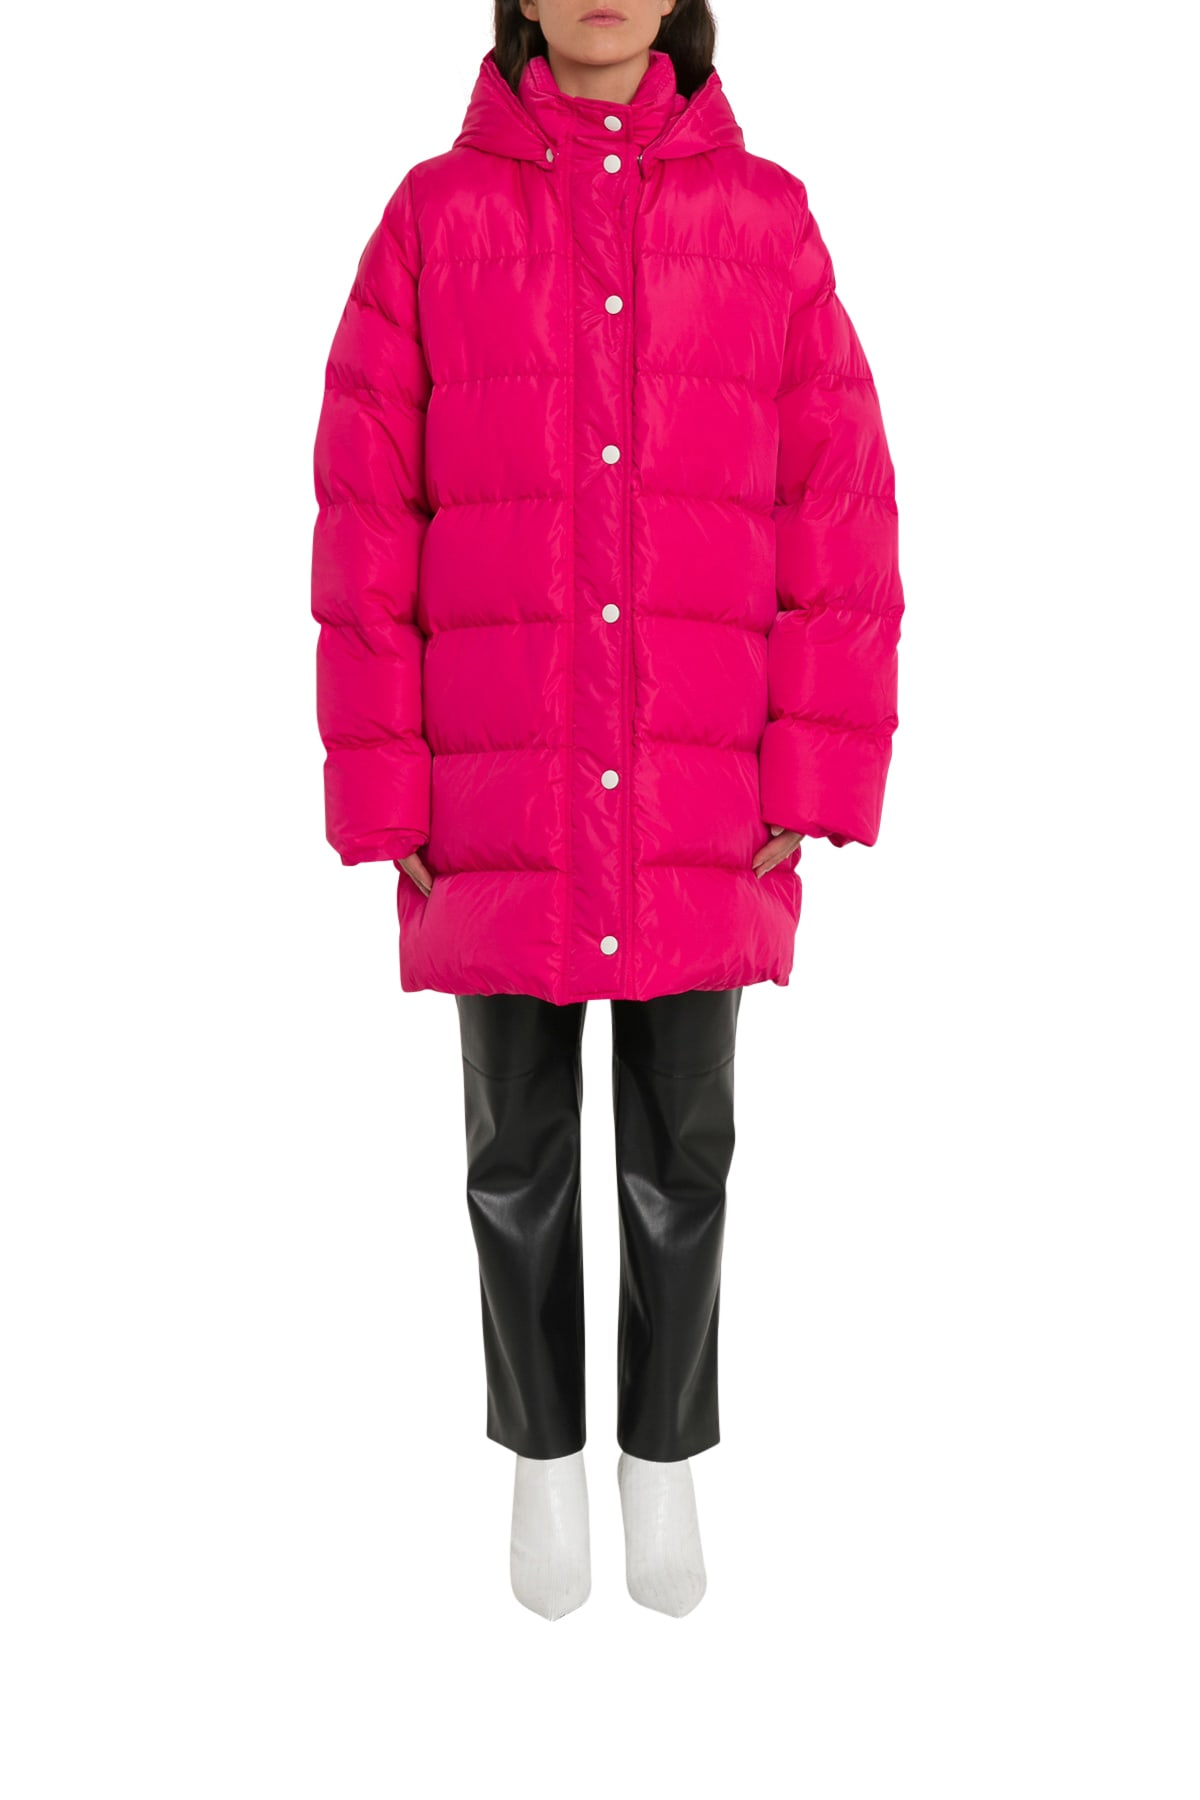 MSGM Lung Puffed Coat With Loaed Hood